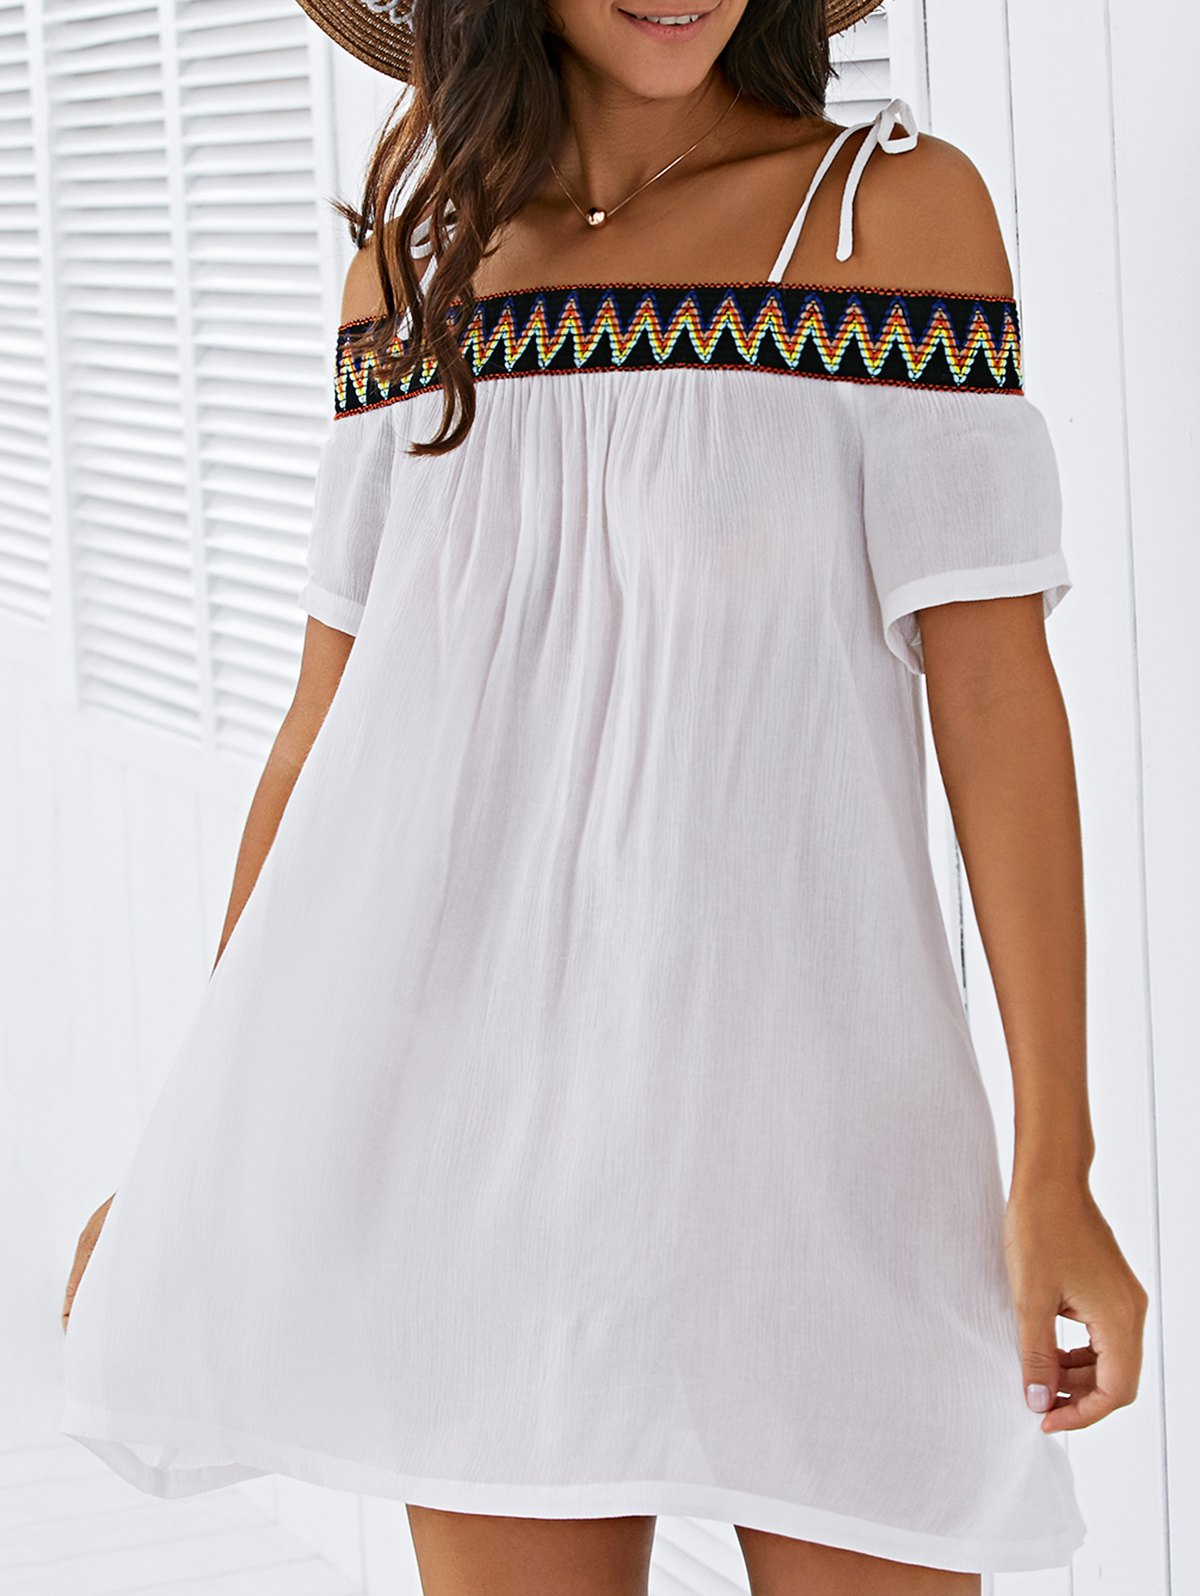 Cami Short Sleeve Embroidery Shift Dress